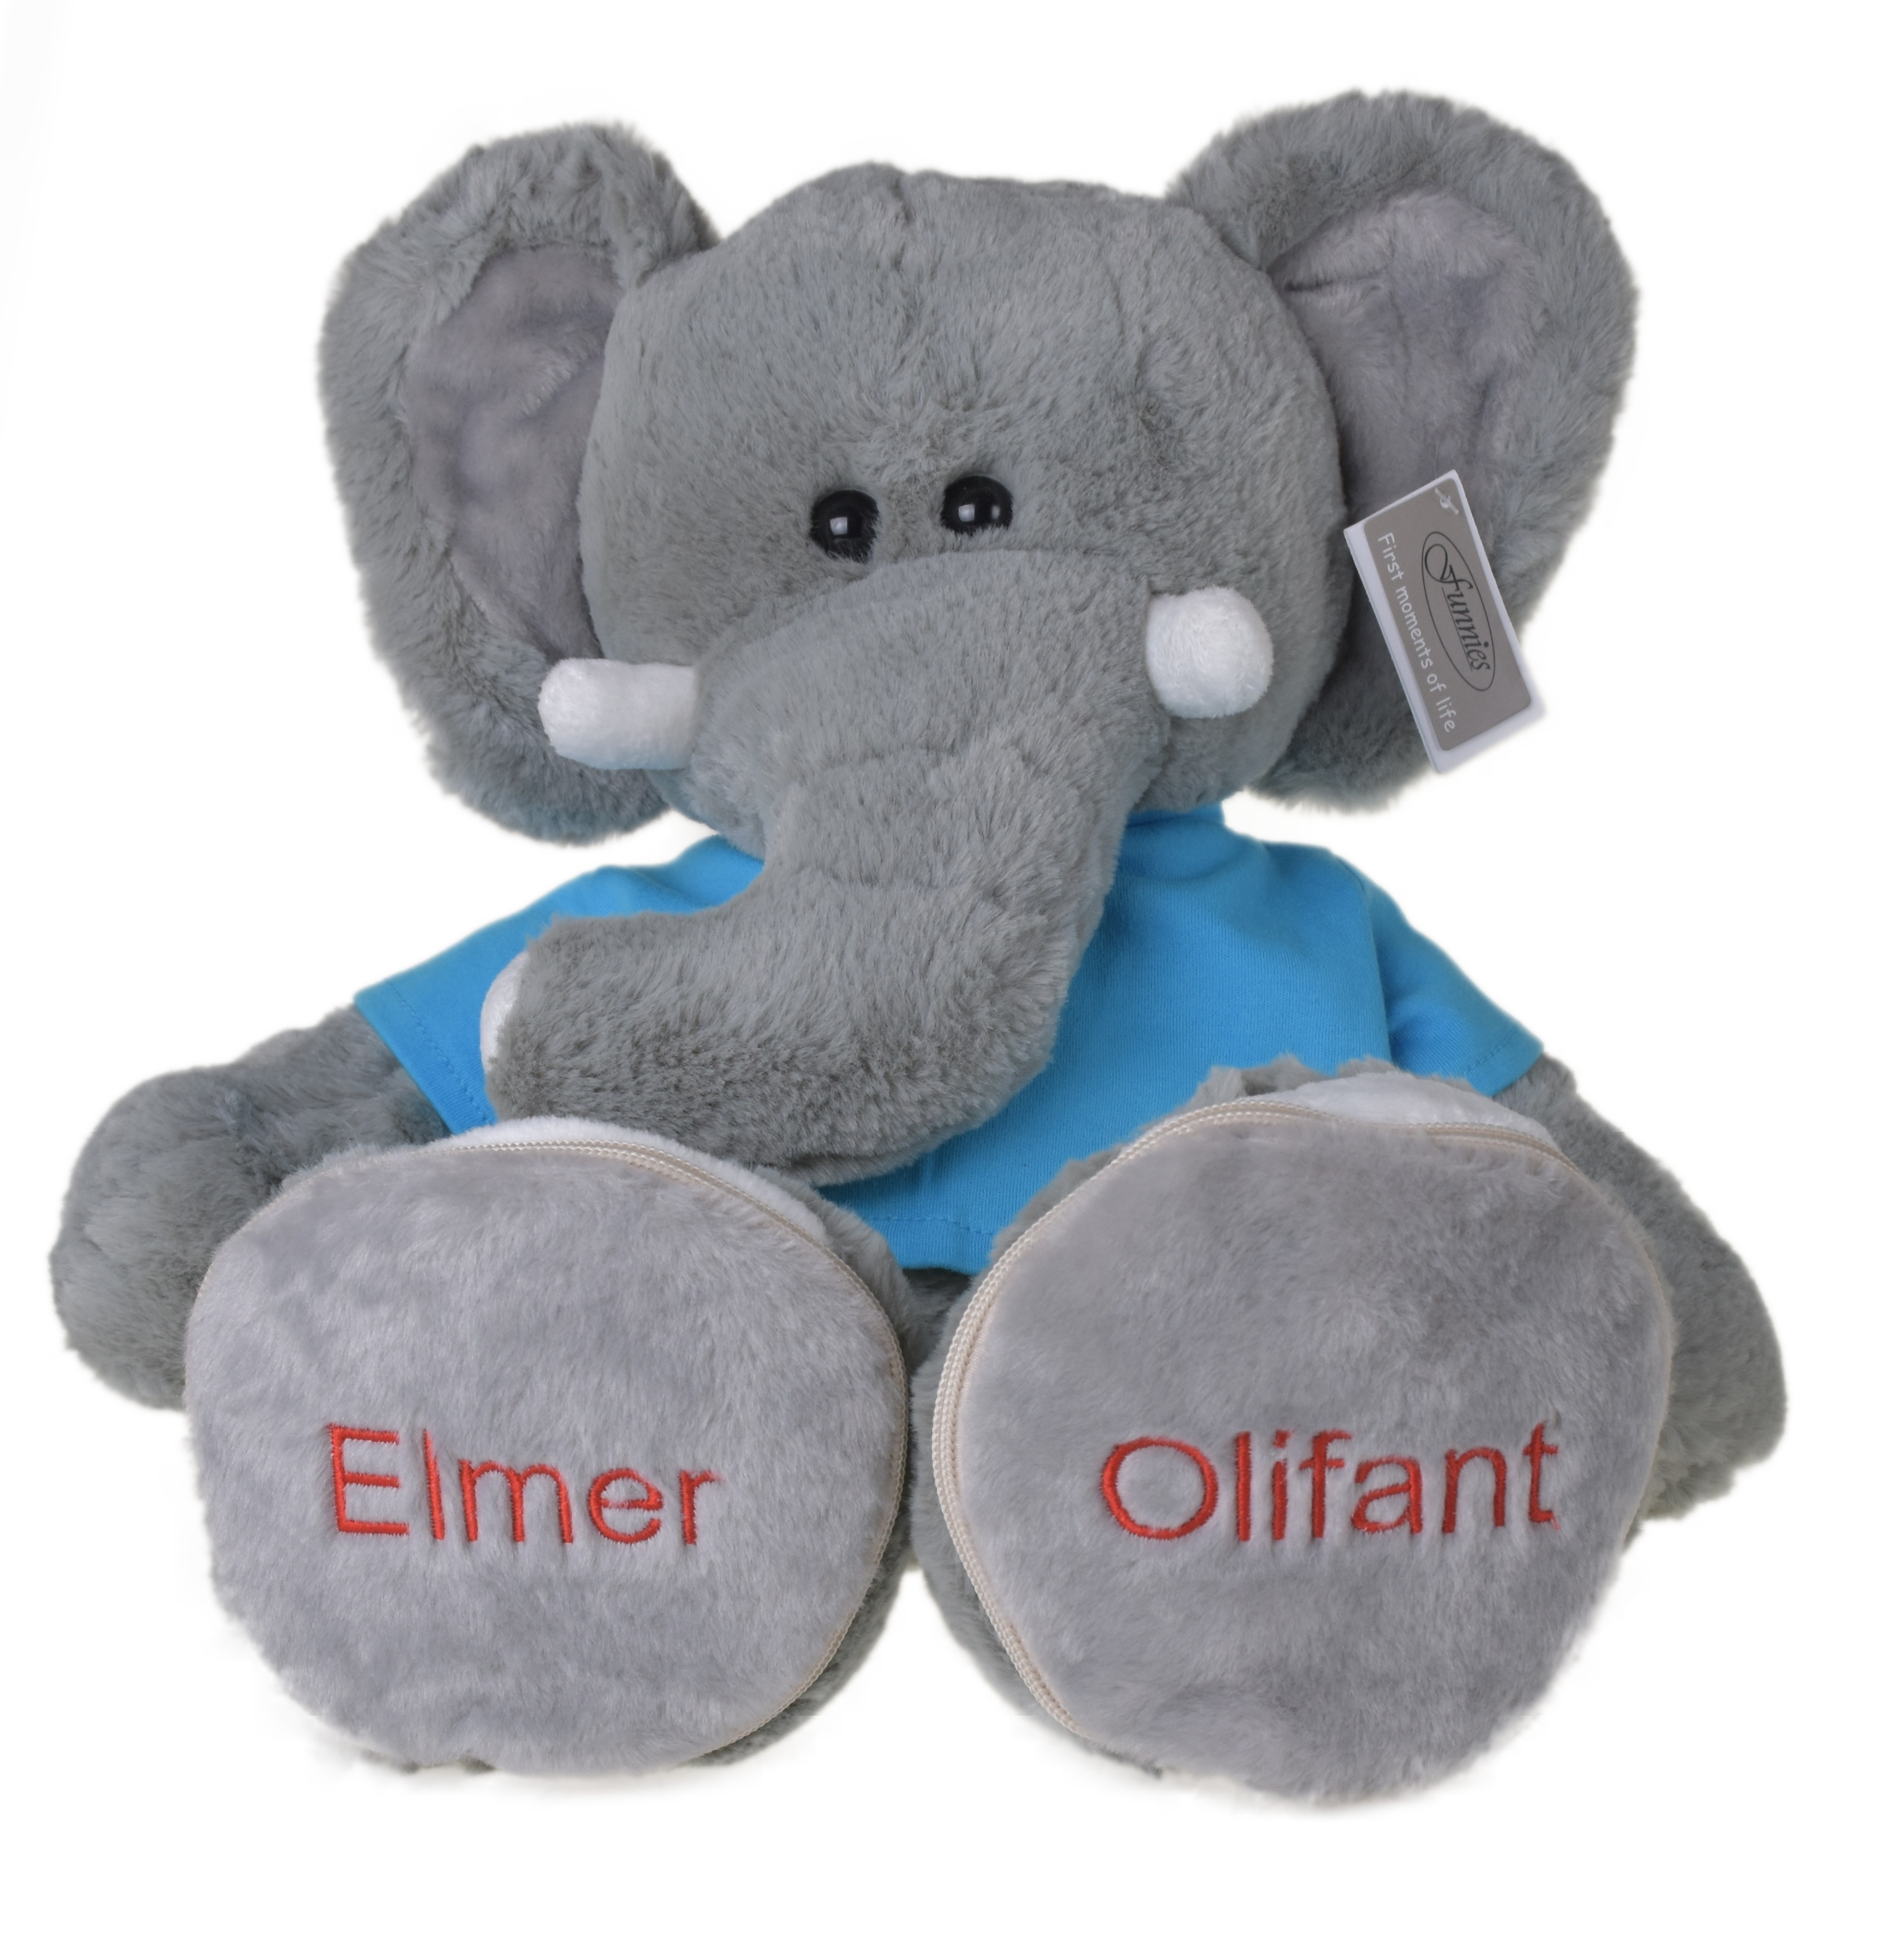 Betere Funnies knuffel olifant (45cm) met afritsbare voetzooltjes QN-86